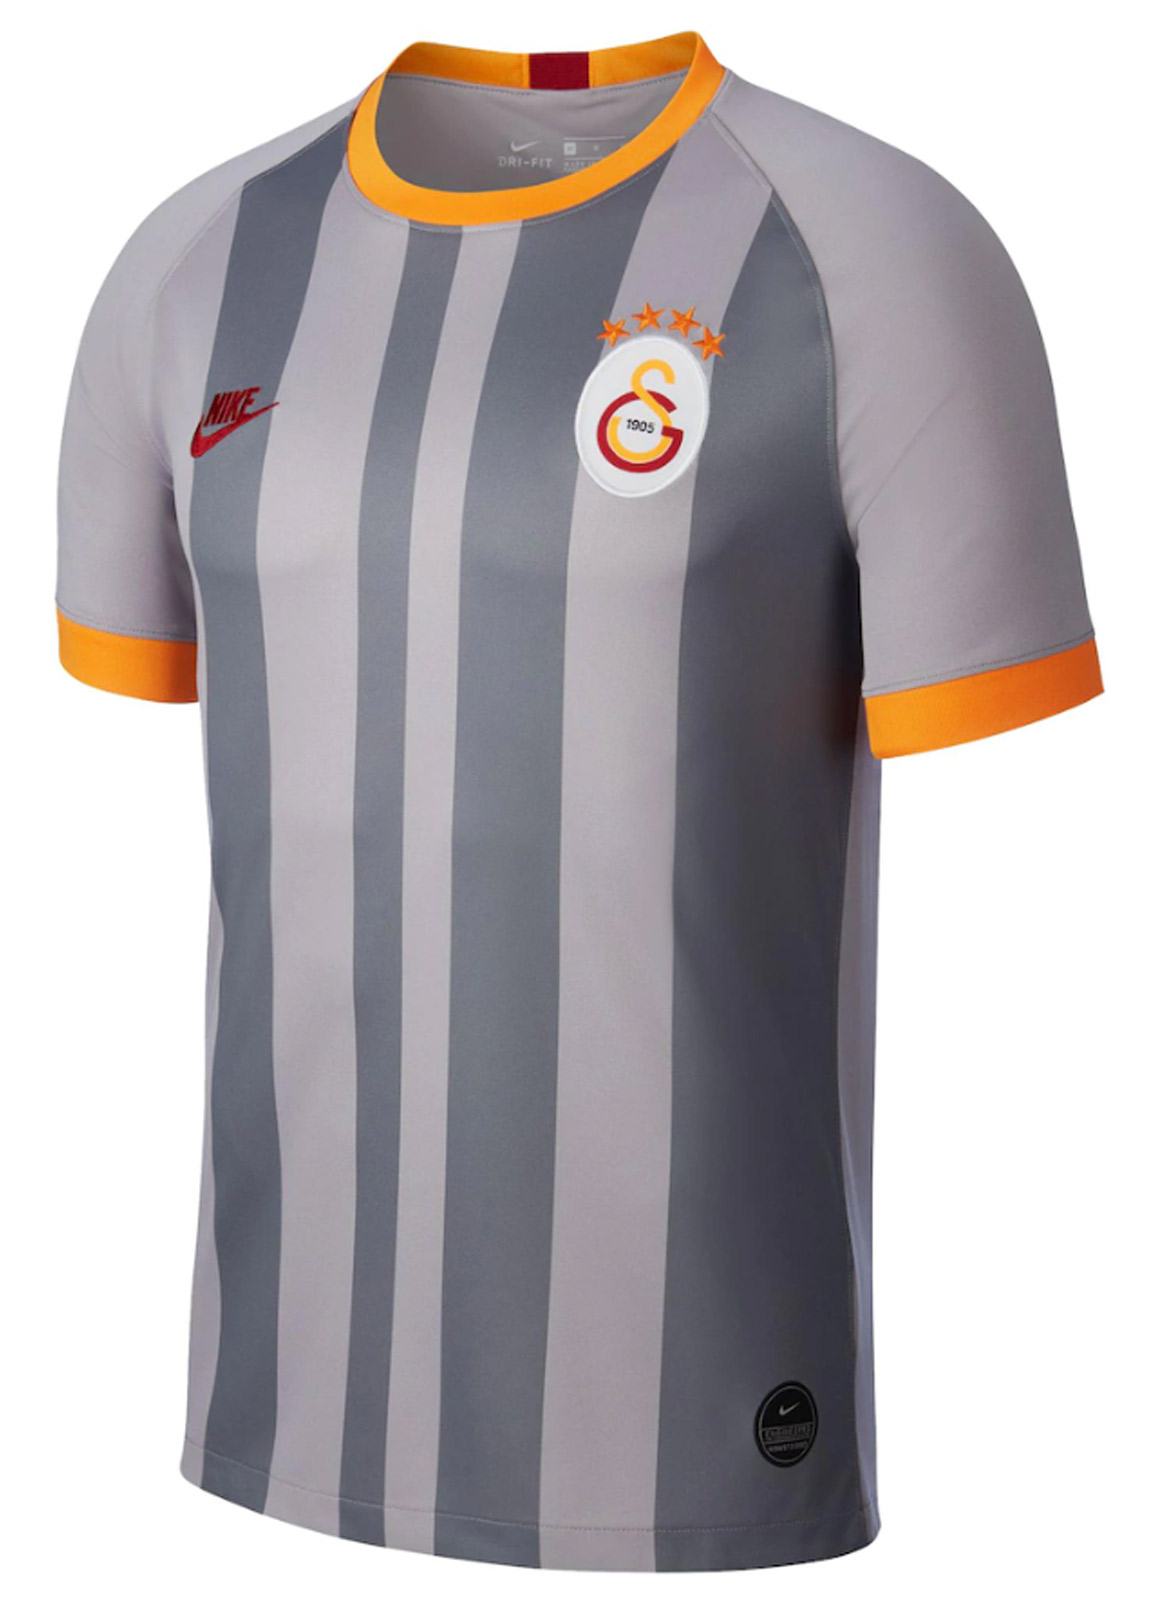 NIKE GALATASARAY GRİ ALTERNATİF MAÇ FORMASI 19-20 AT0030-060